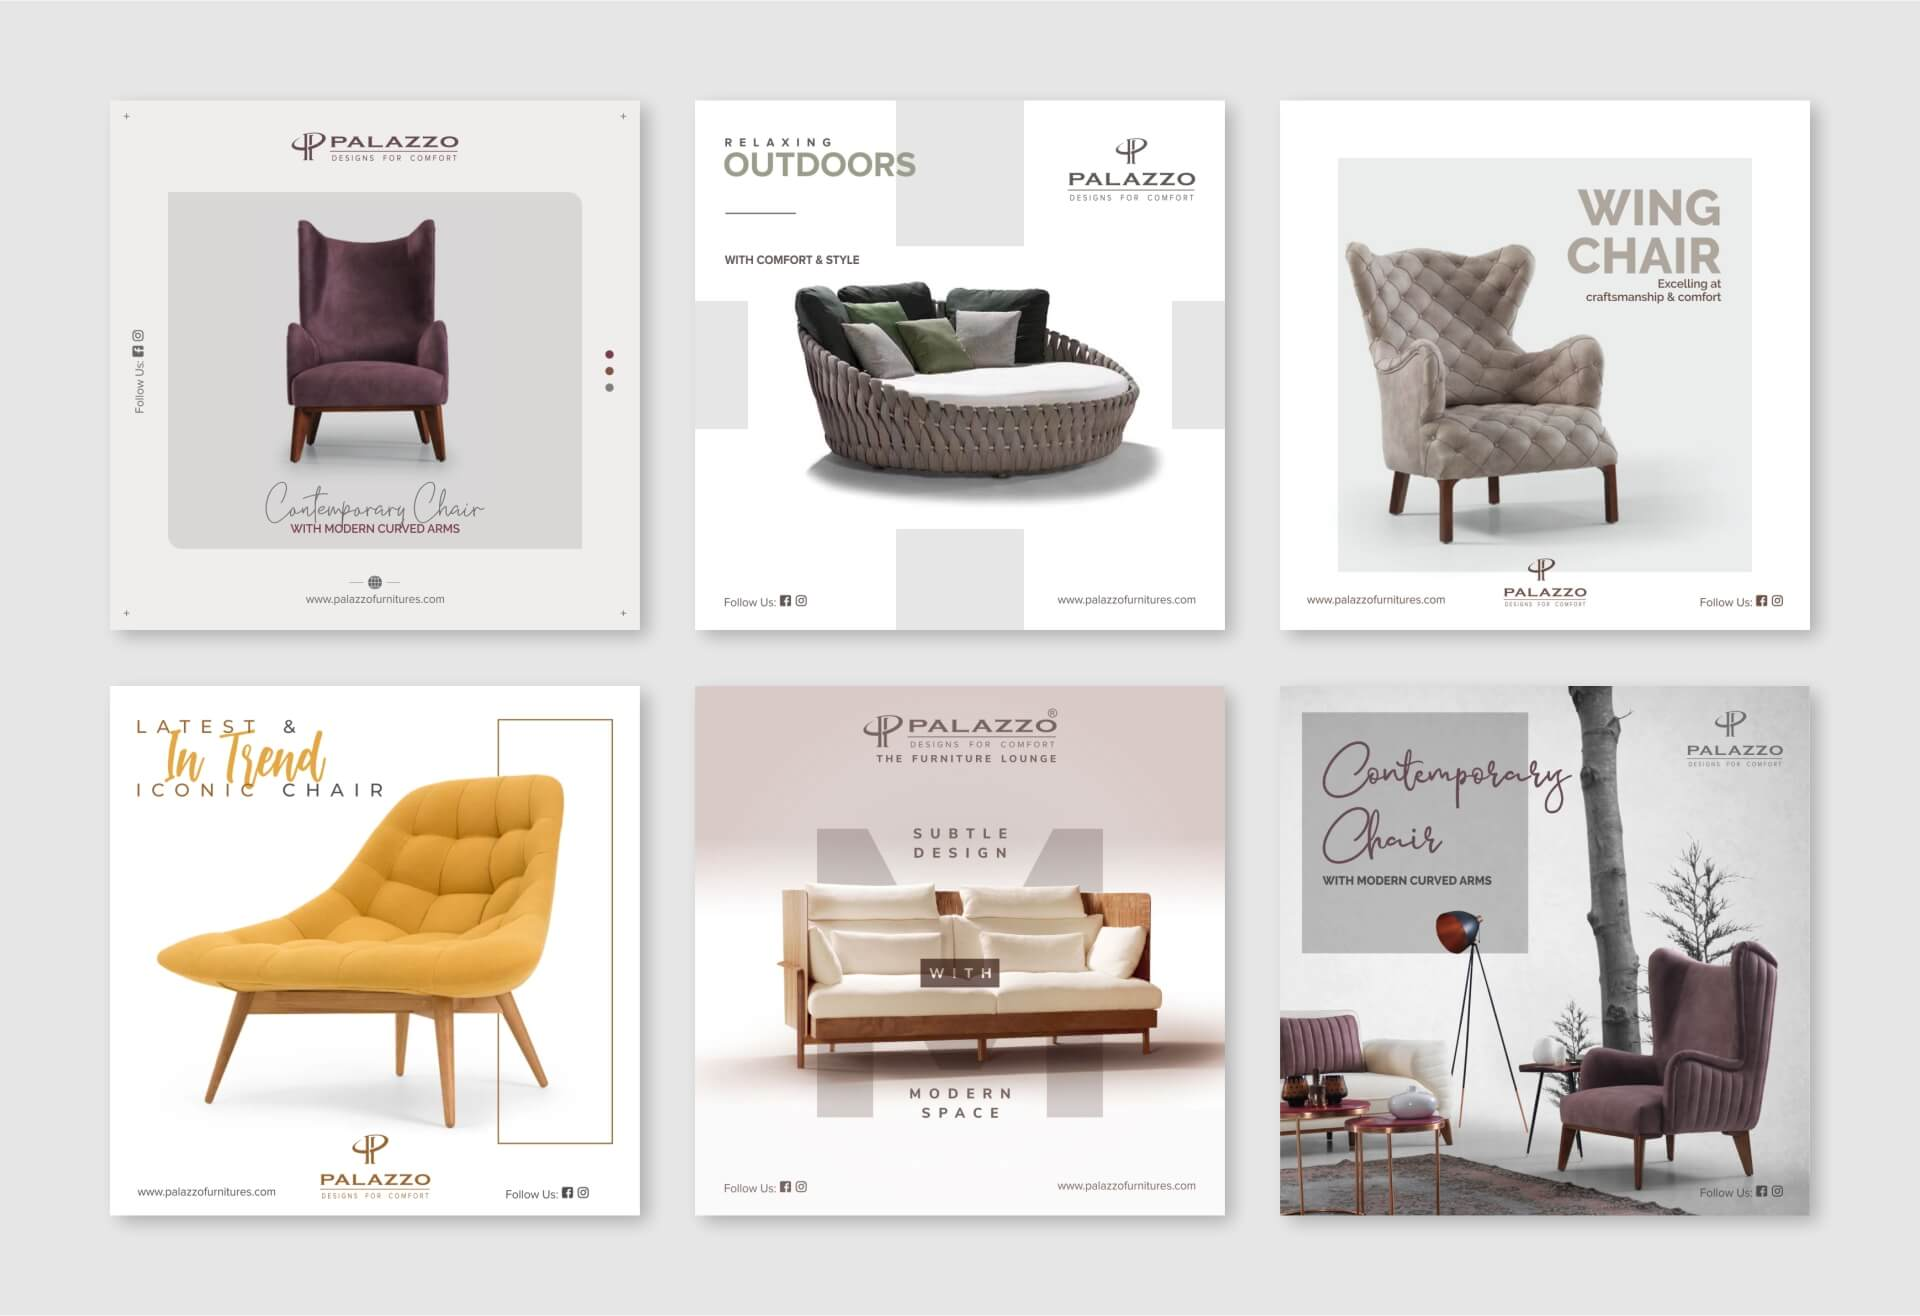 Social Media Marketing For Luxurious Furniture Brand To Win High End Customers 05